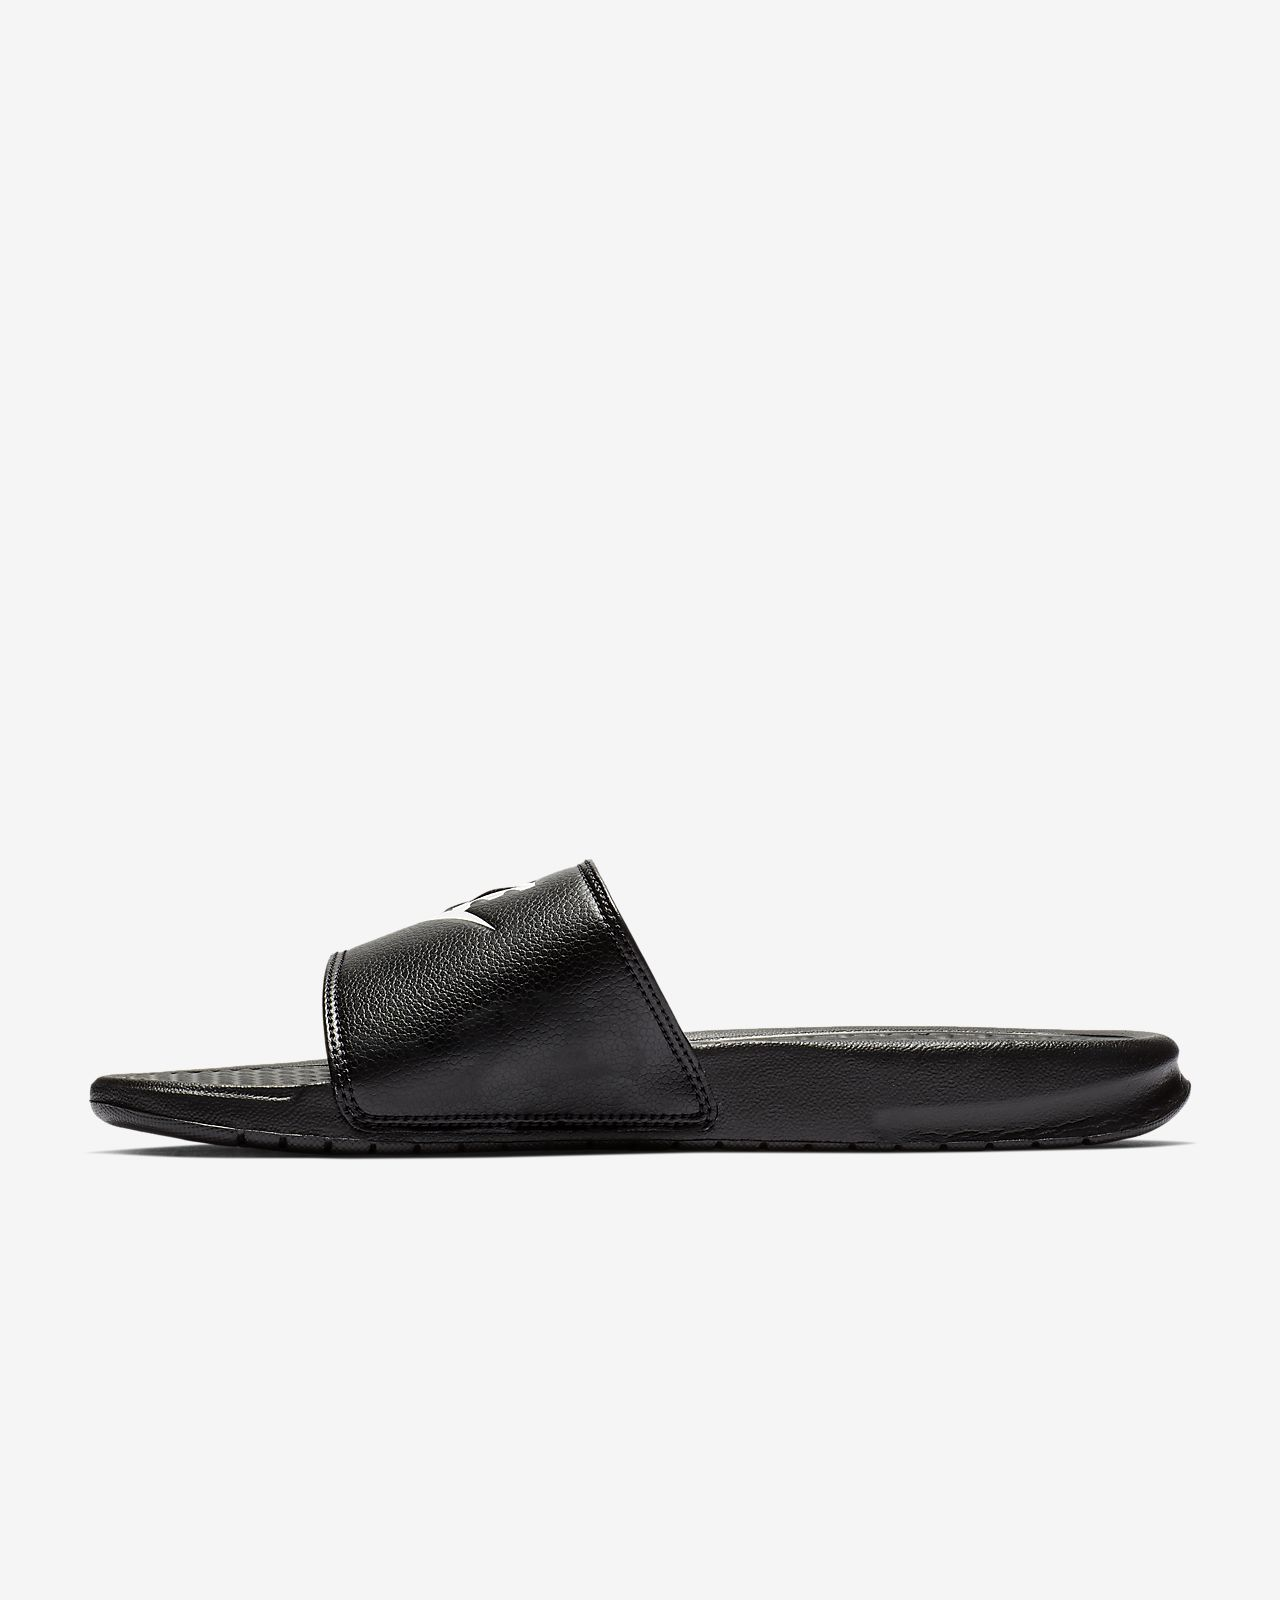 5a492e667902 Low Resolution Nike Benassi Slide Nike Benassi Slide